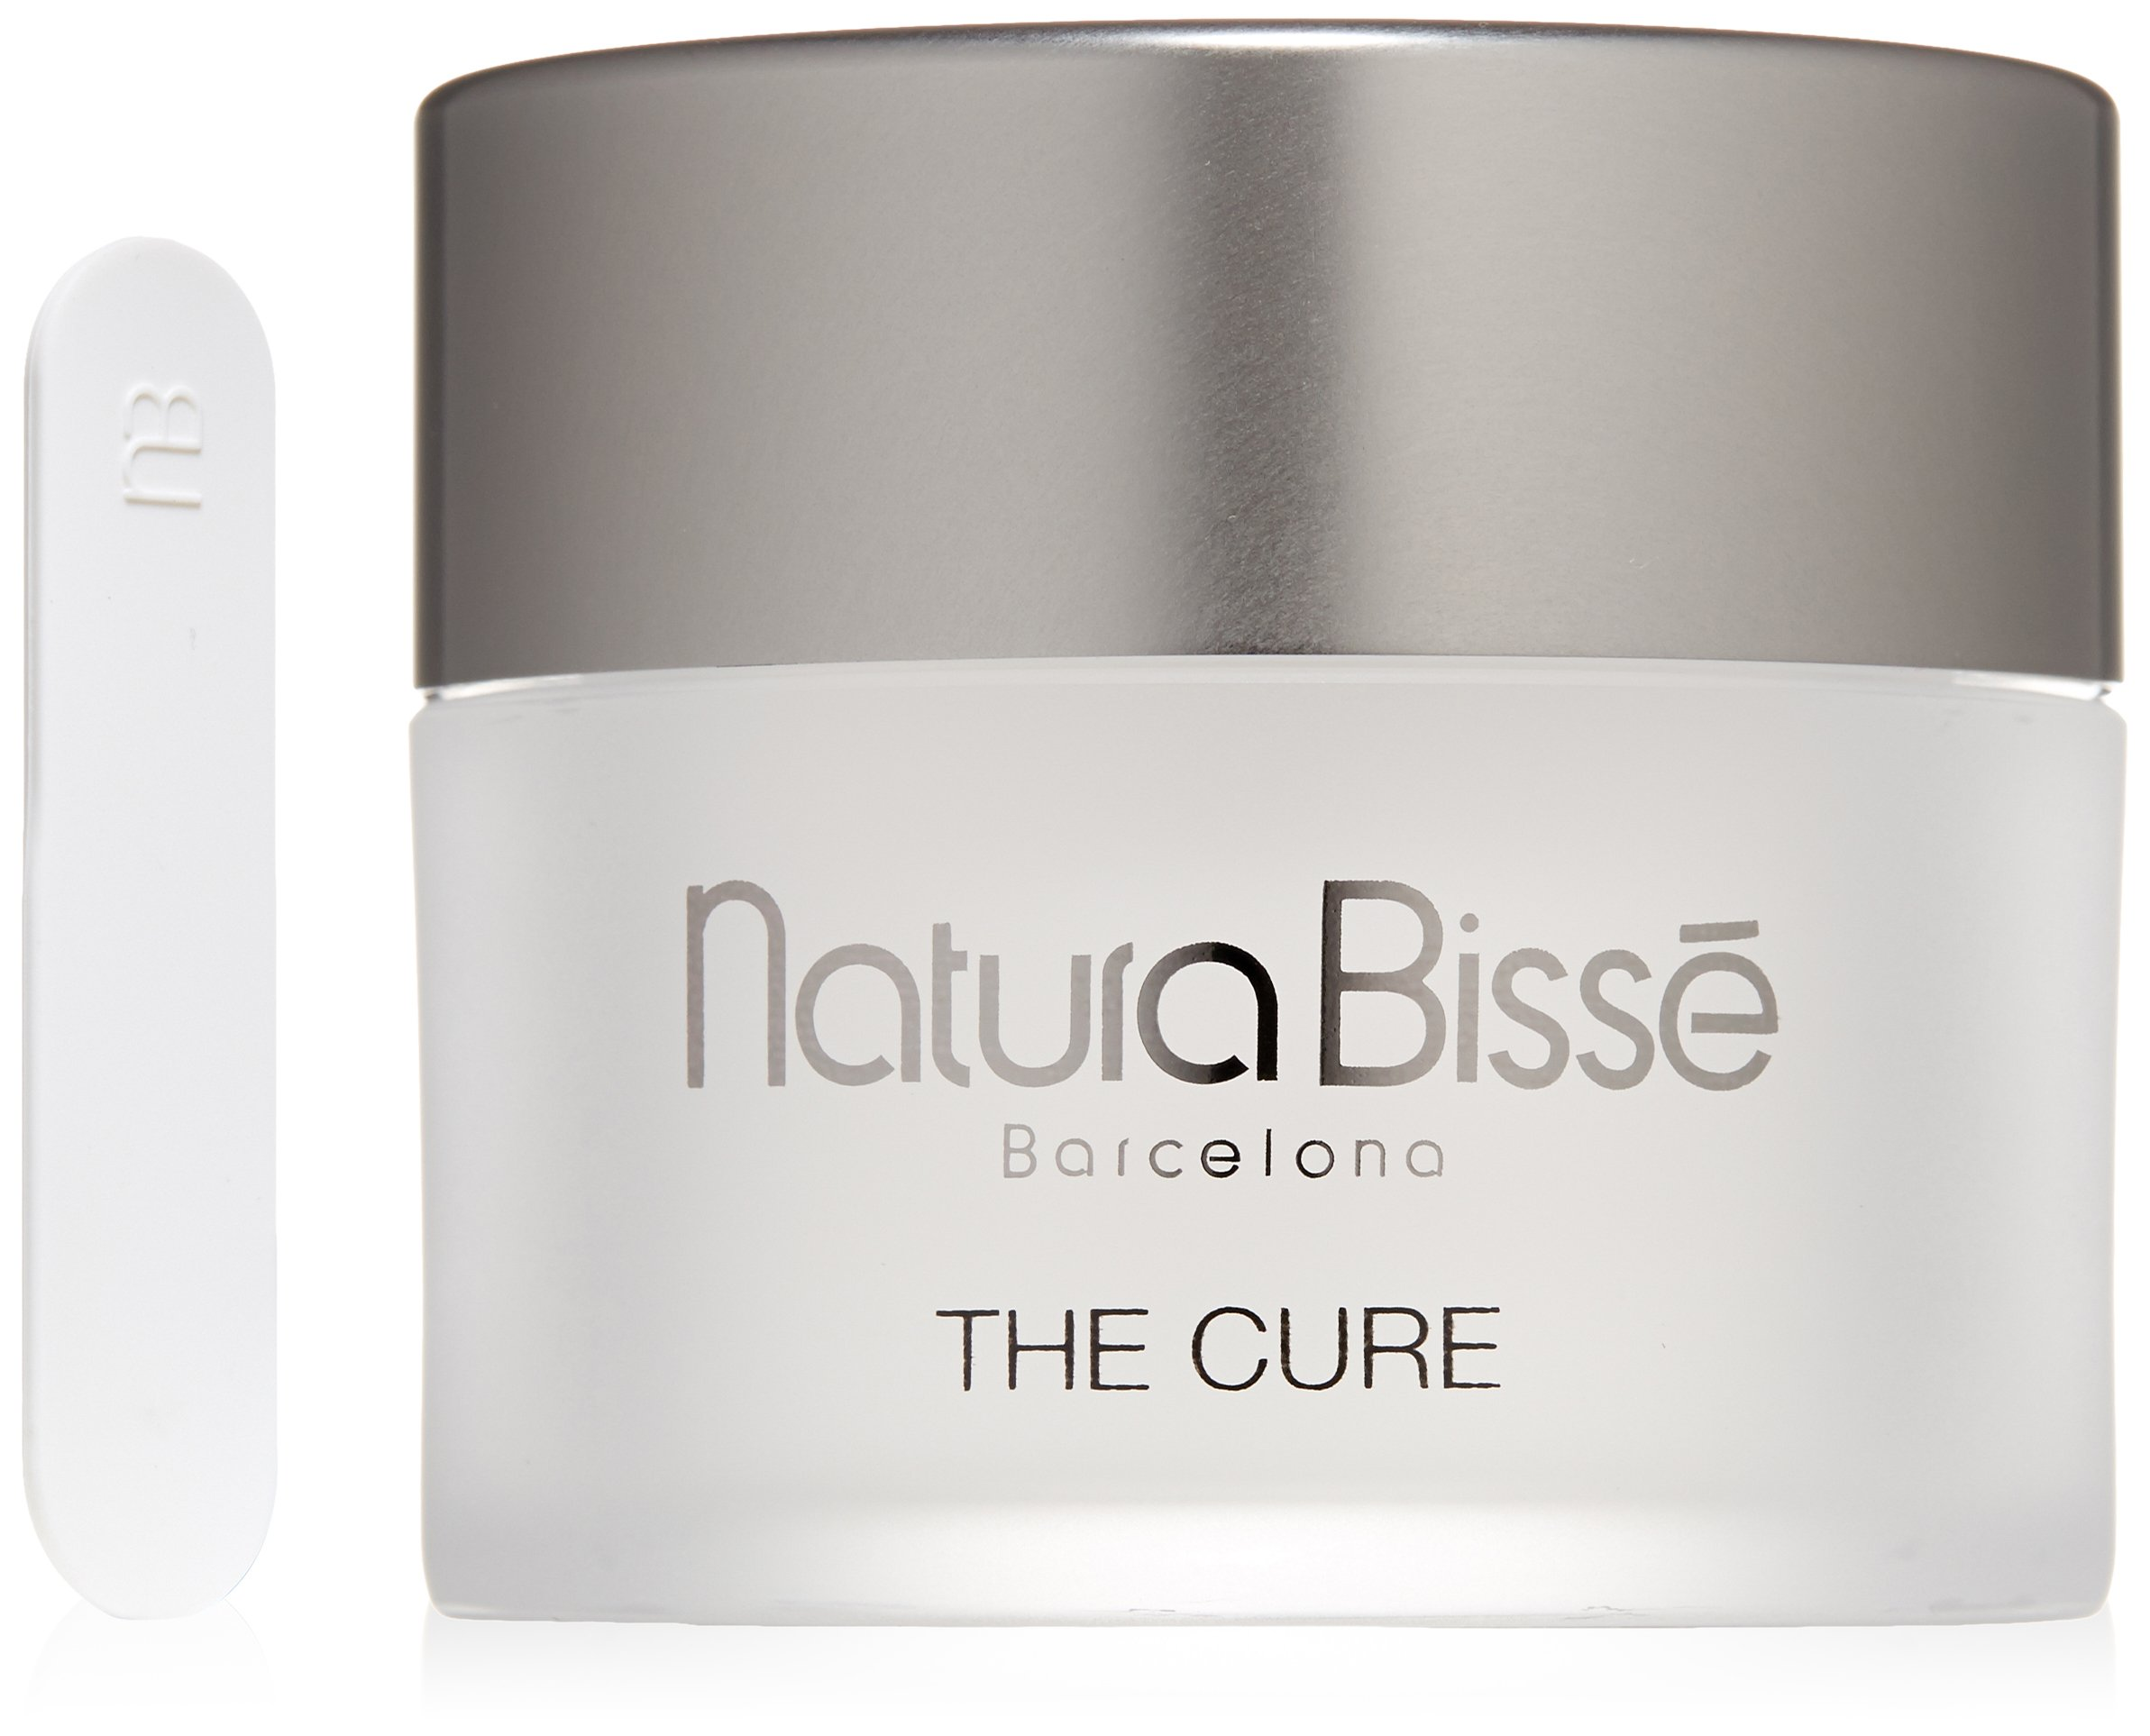 Natura Bissé The Cure Cream, 50 ml